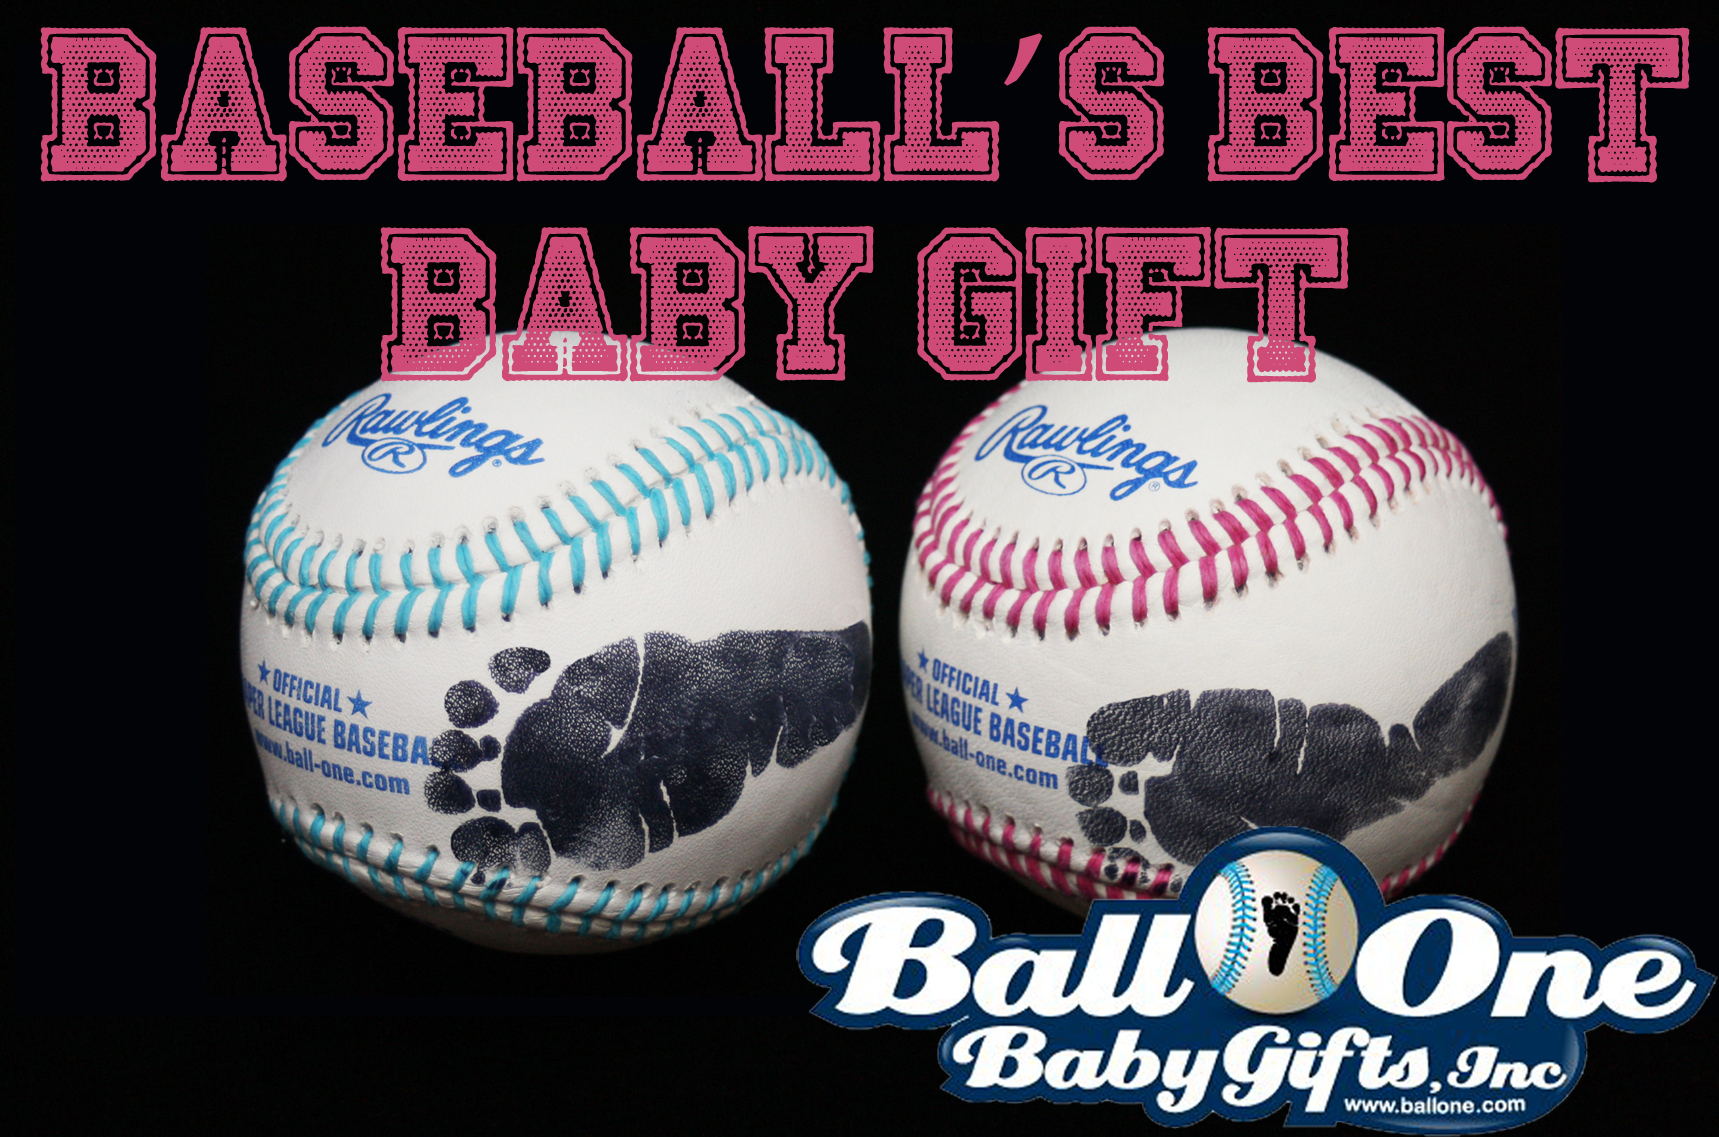 Ball-One Baby Gifts